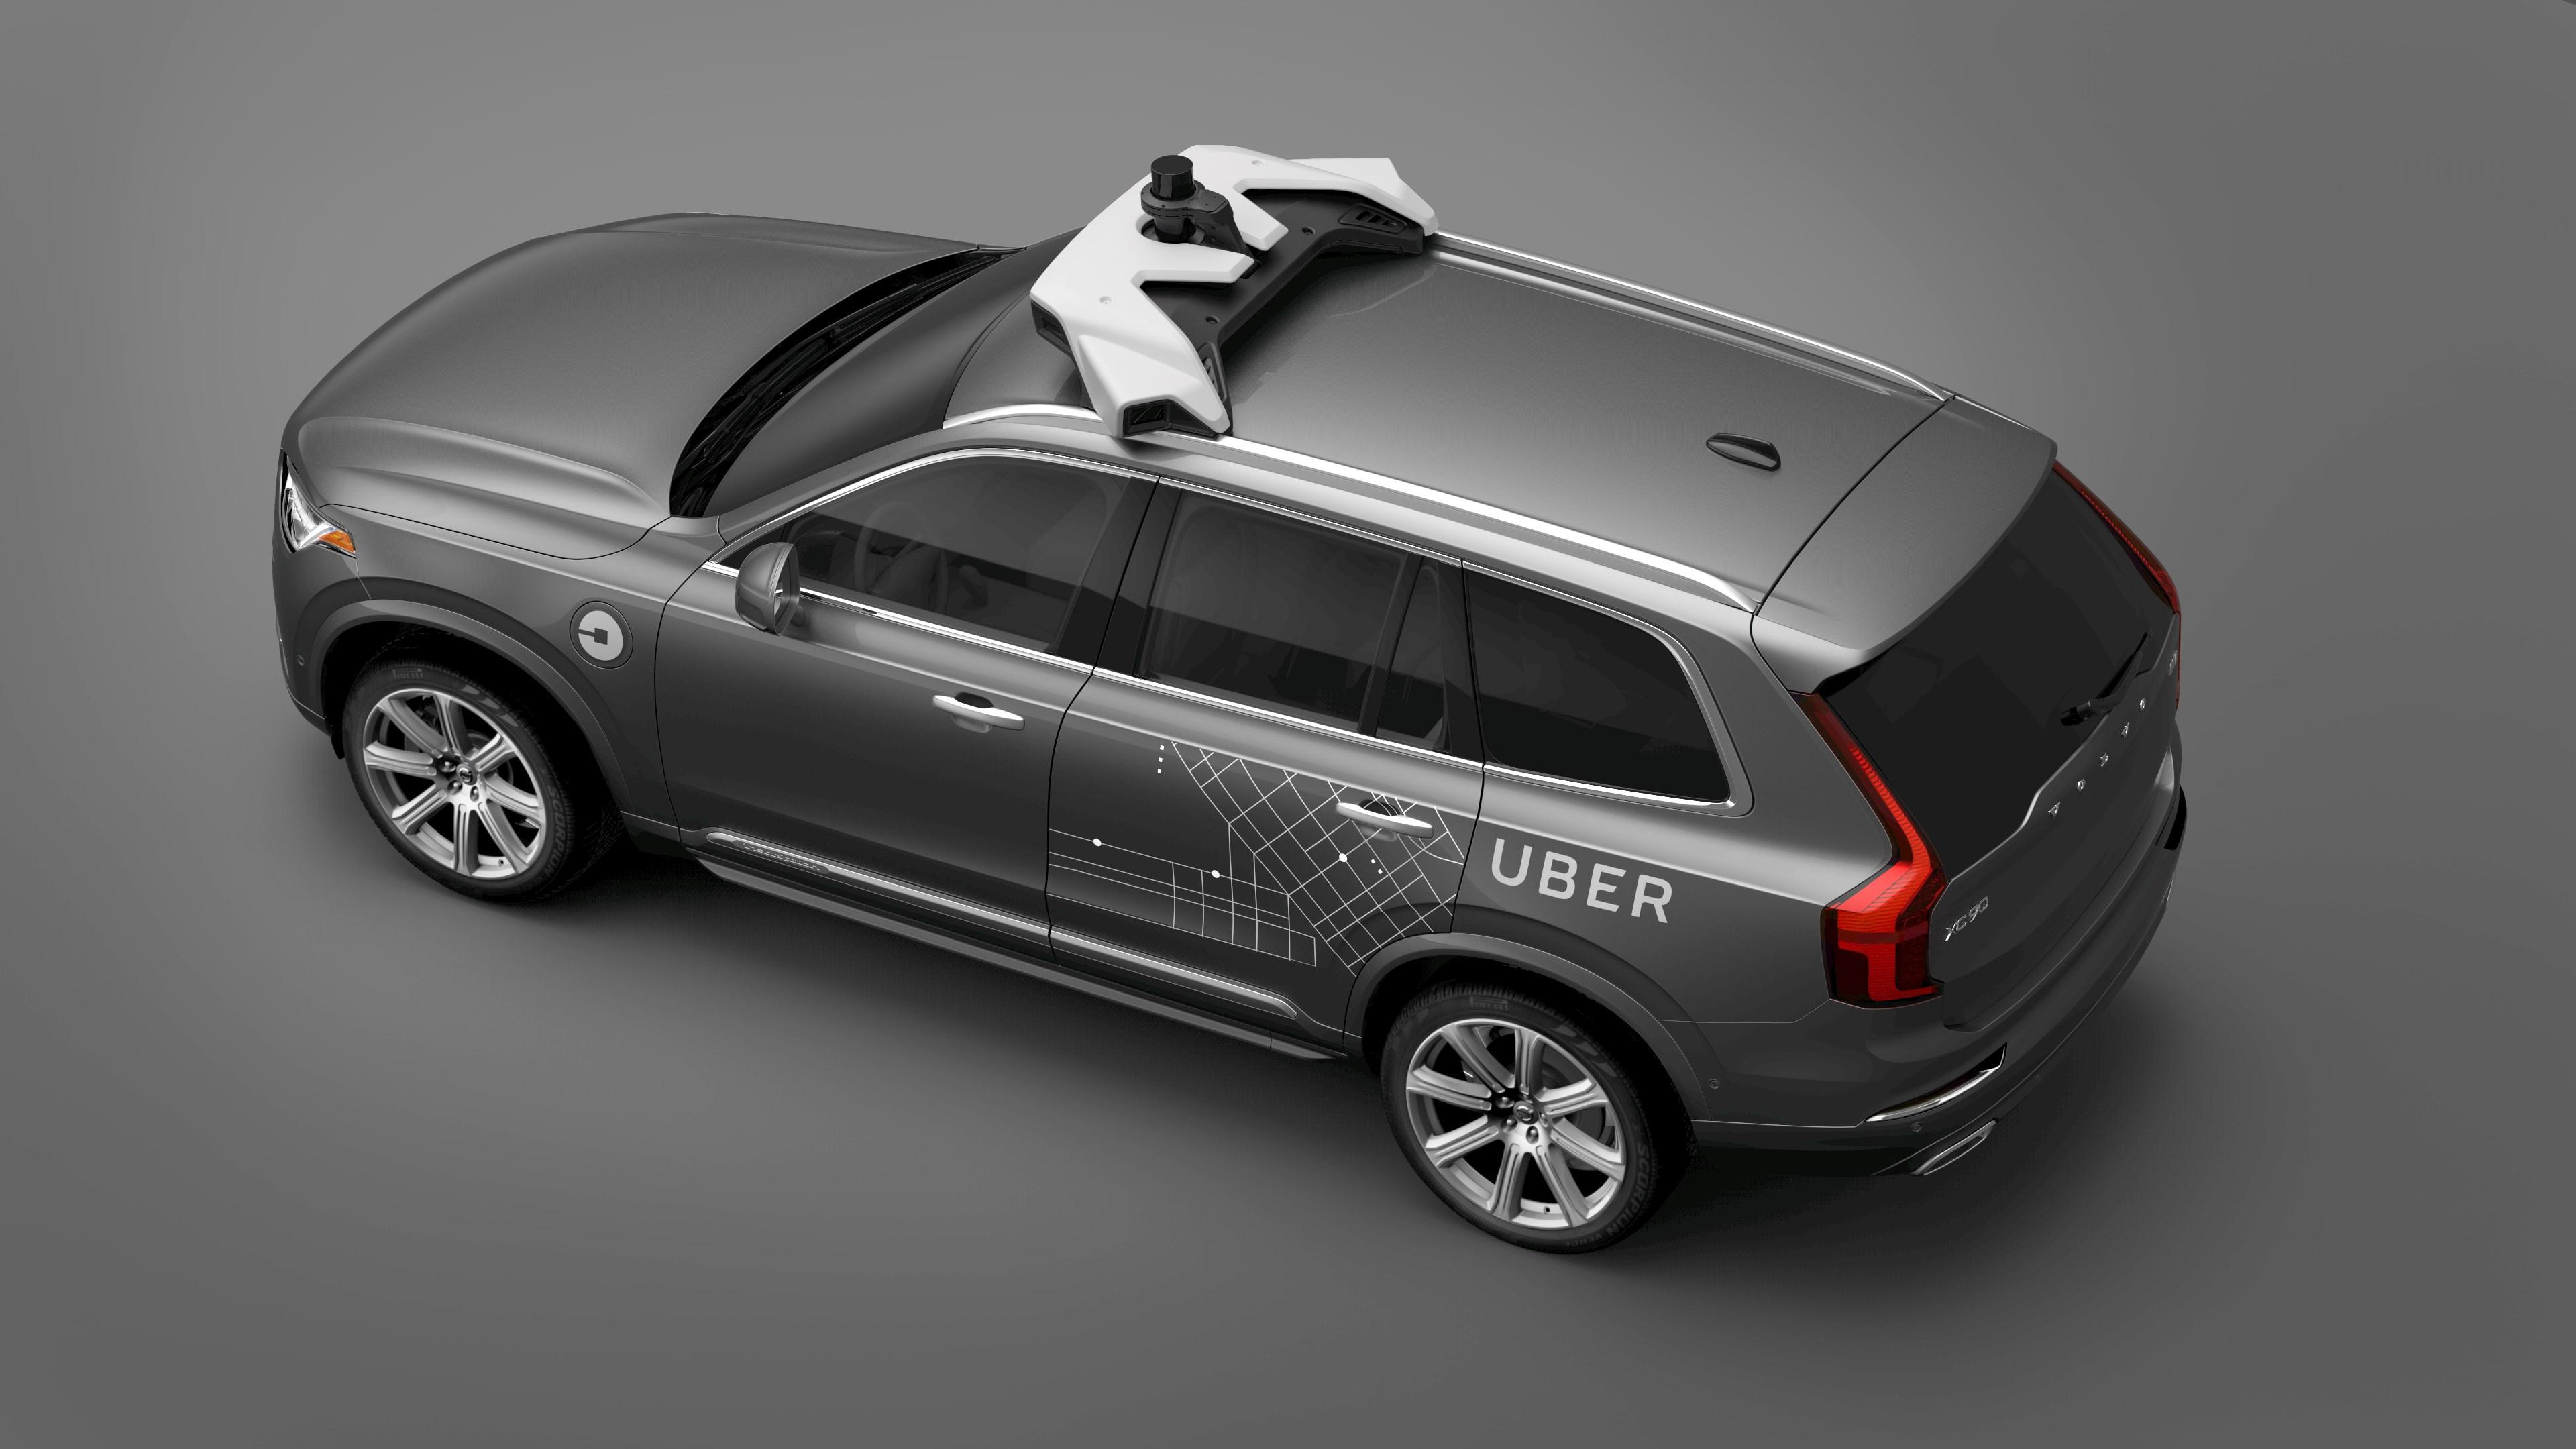 194845-volvo-cars-and-uber-join-forces-to-develop-autonomous-driving-cars